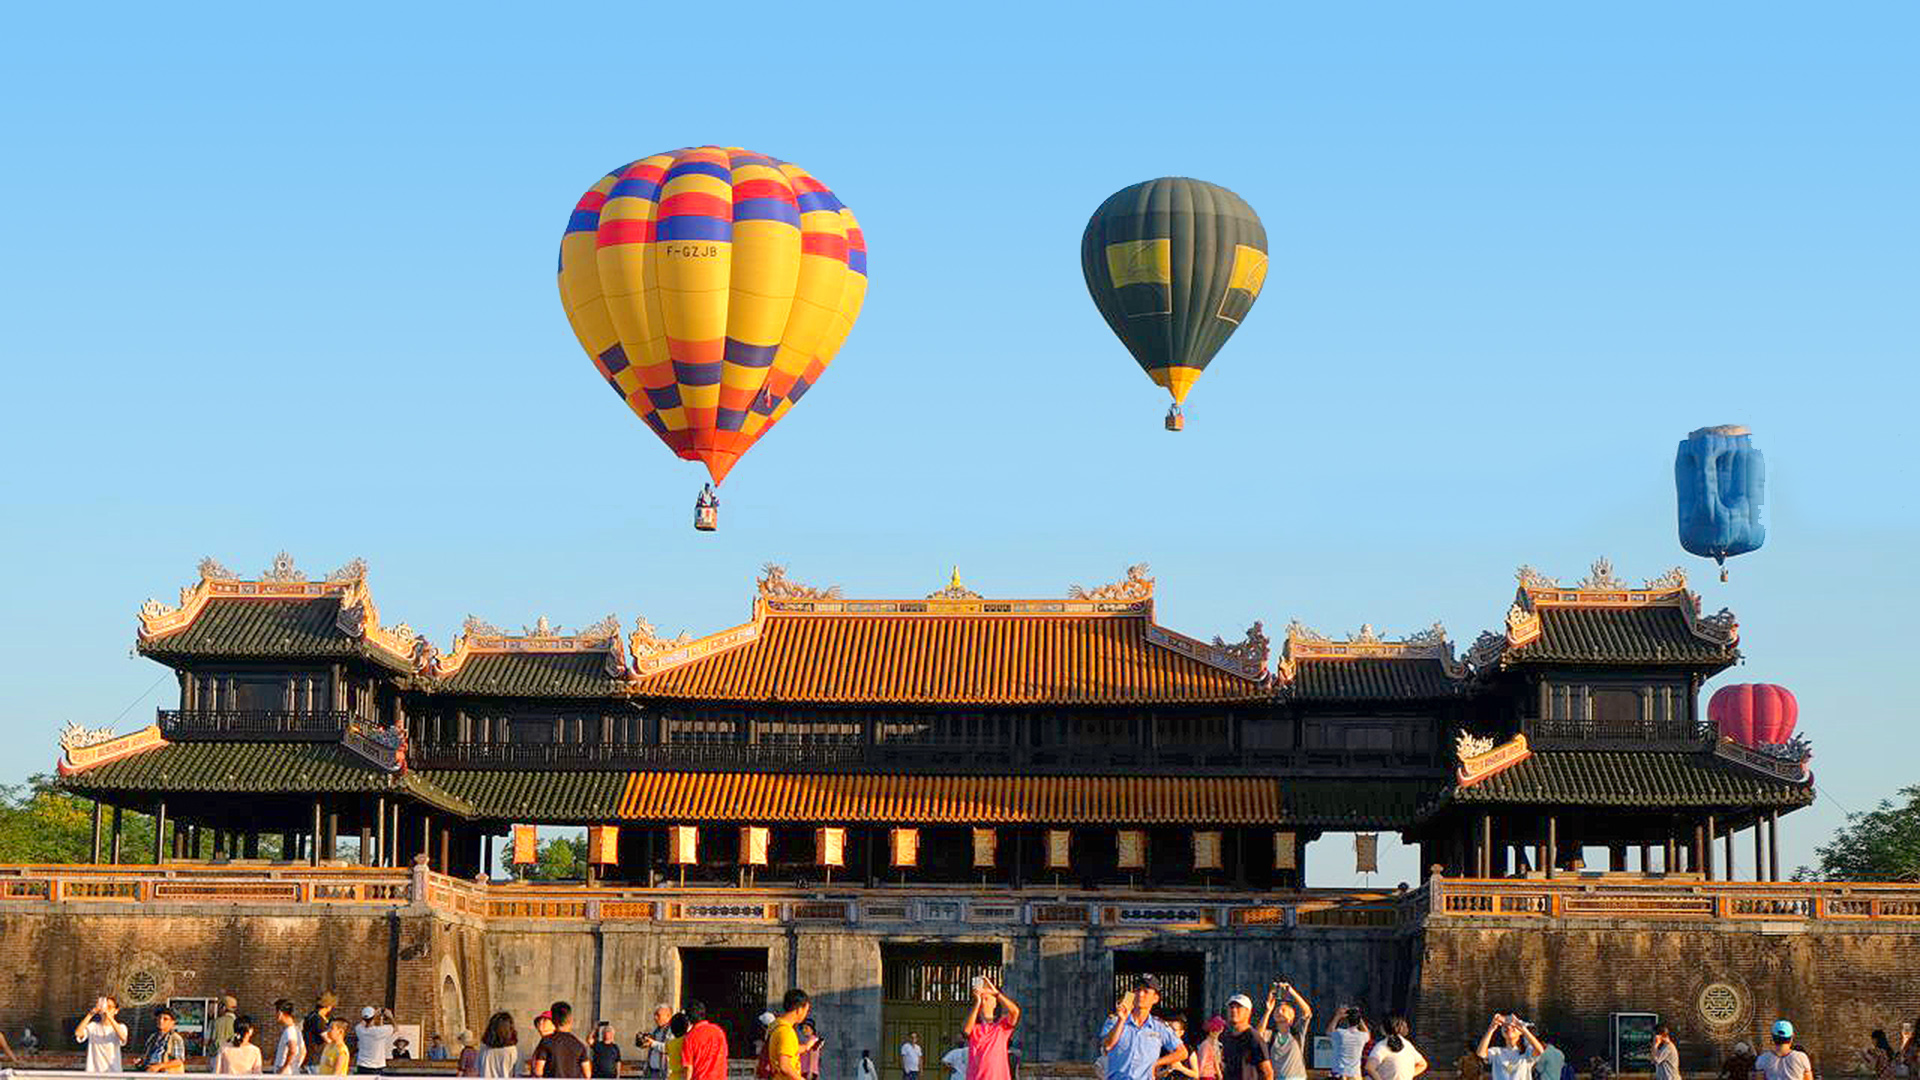 discover-hue-with-the-hot-air-balloon